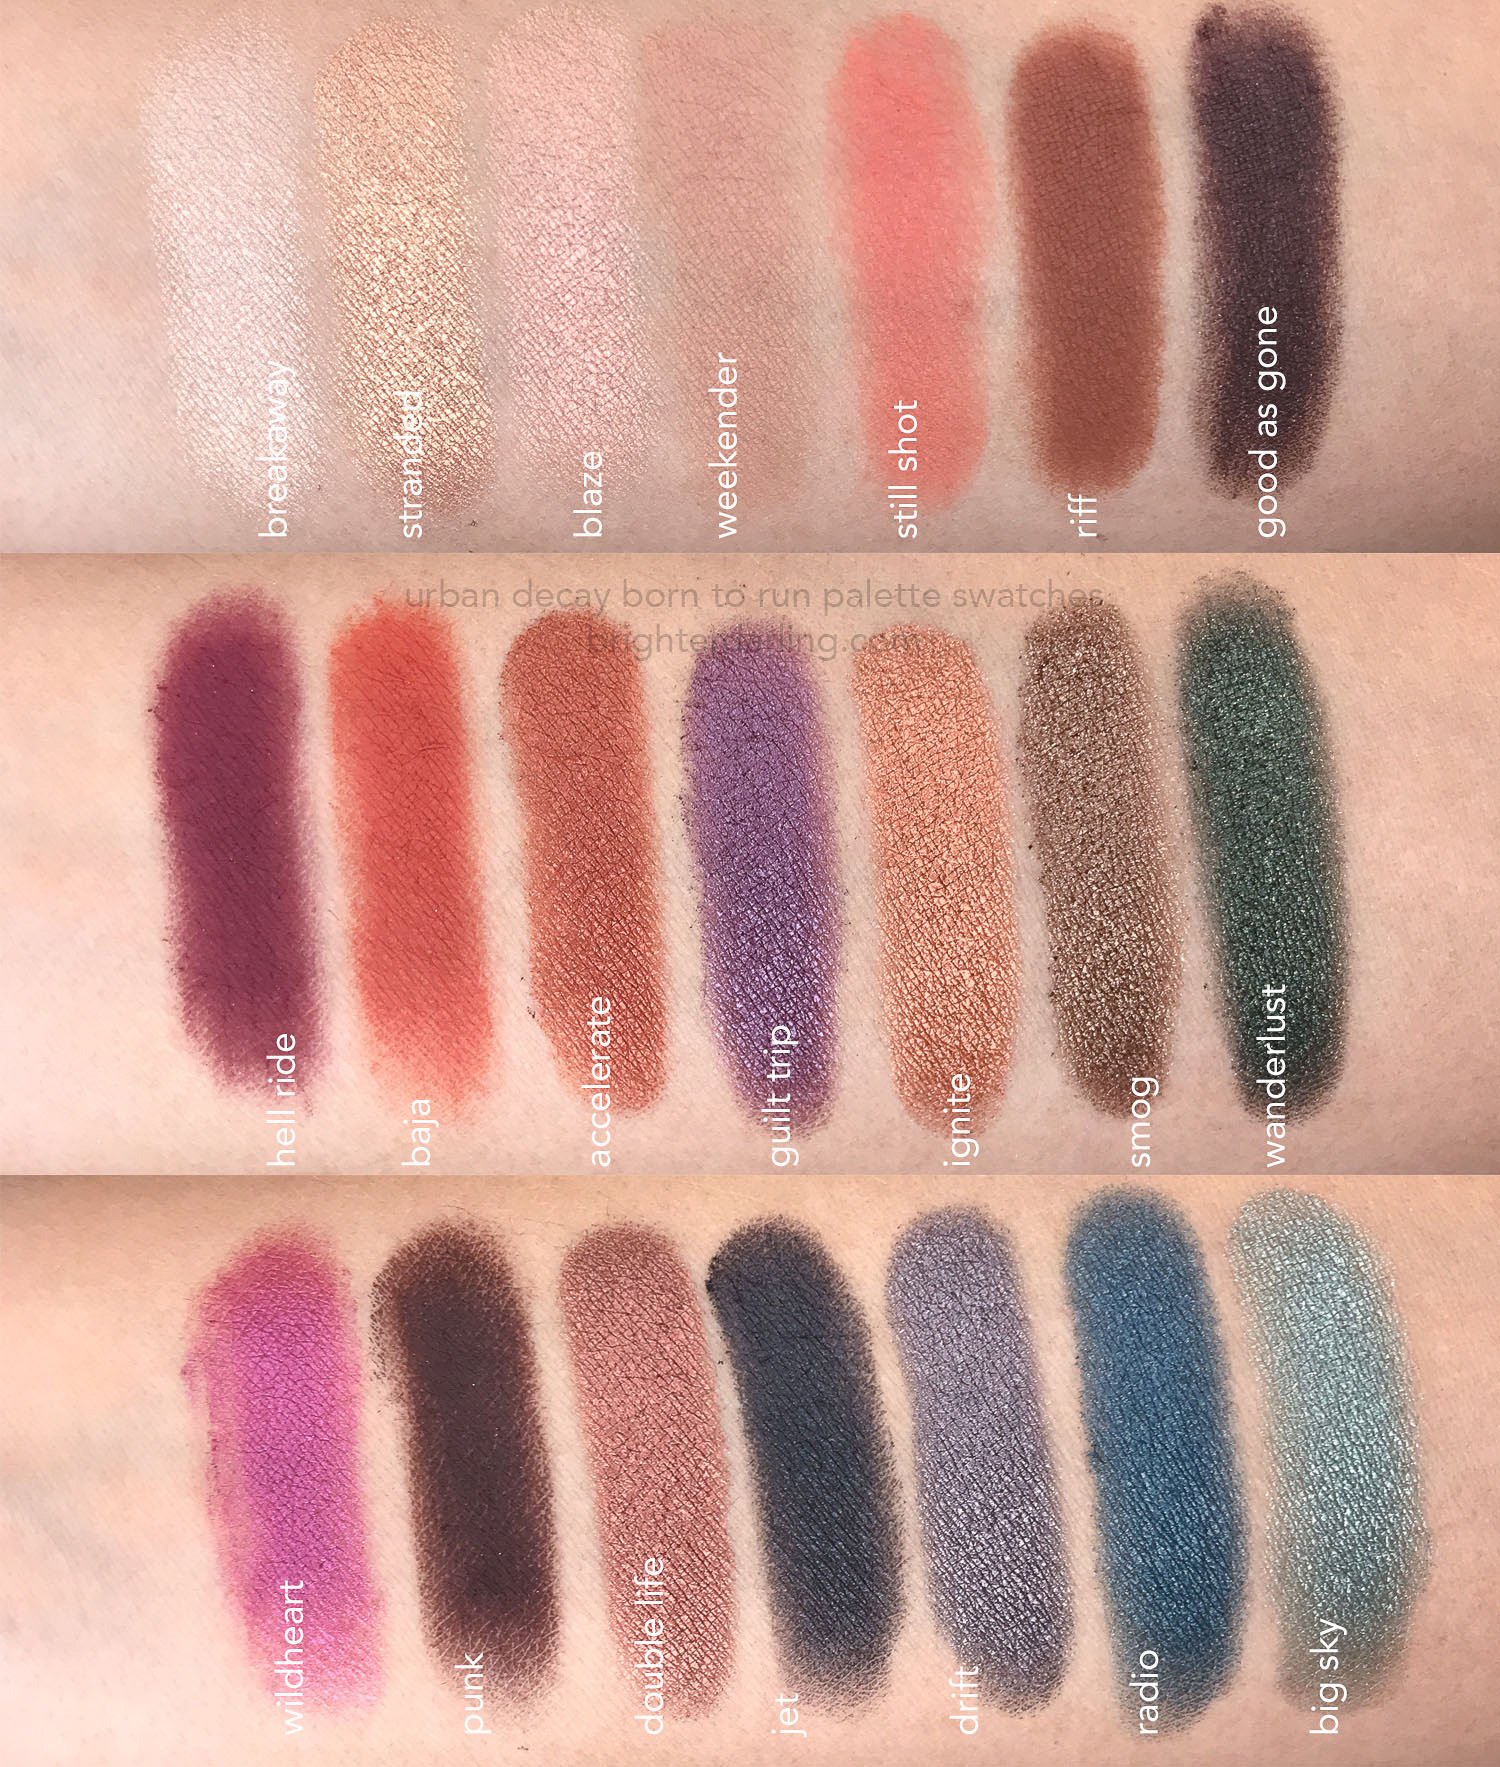 Urban Decay Born To Run Palette Swatches On Medium Skin | Brighter Darling Blog